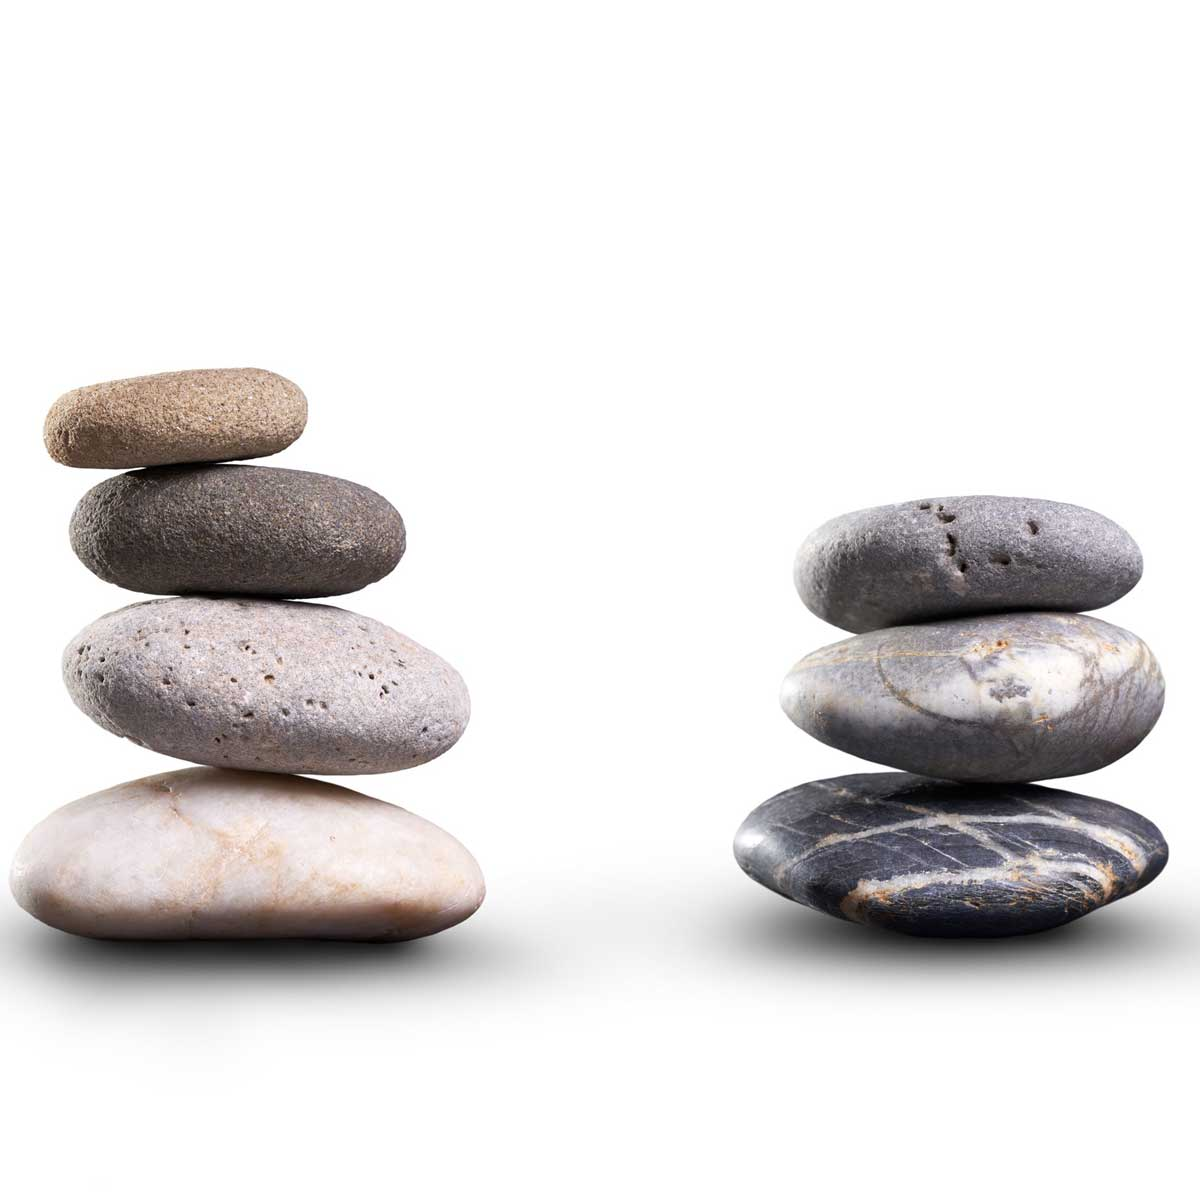 A collection of pile of stones isolated on a white background